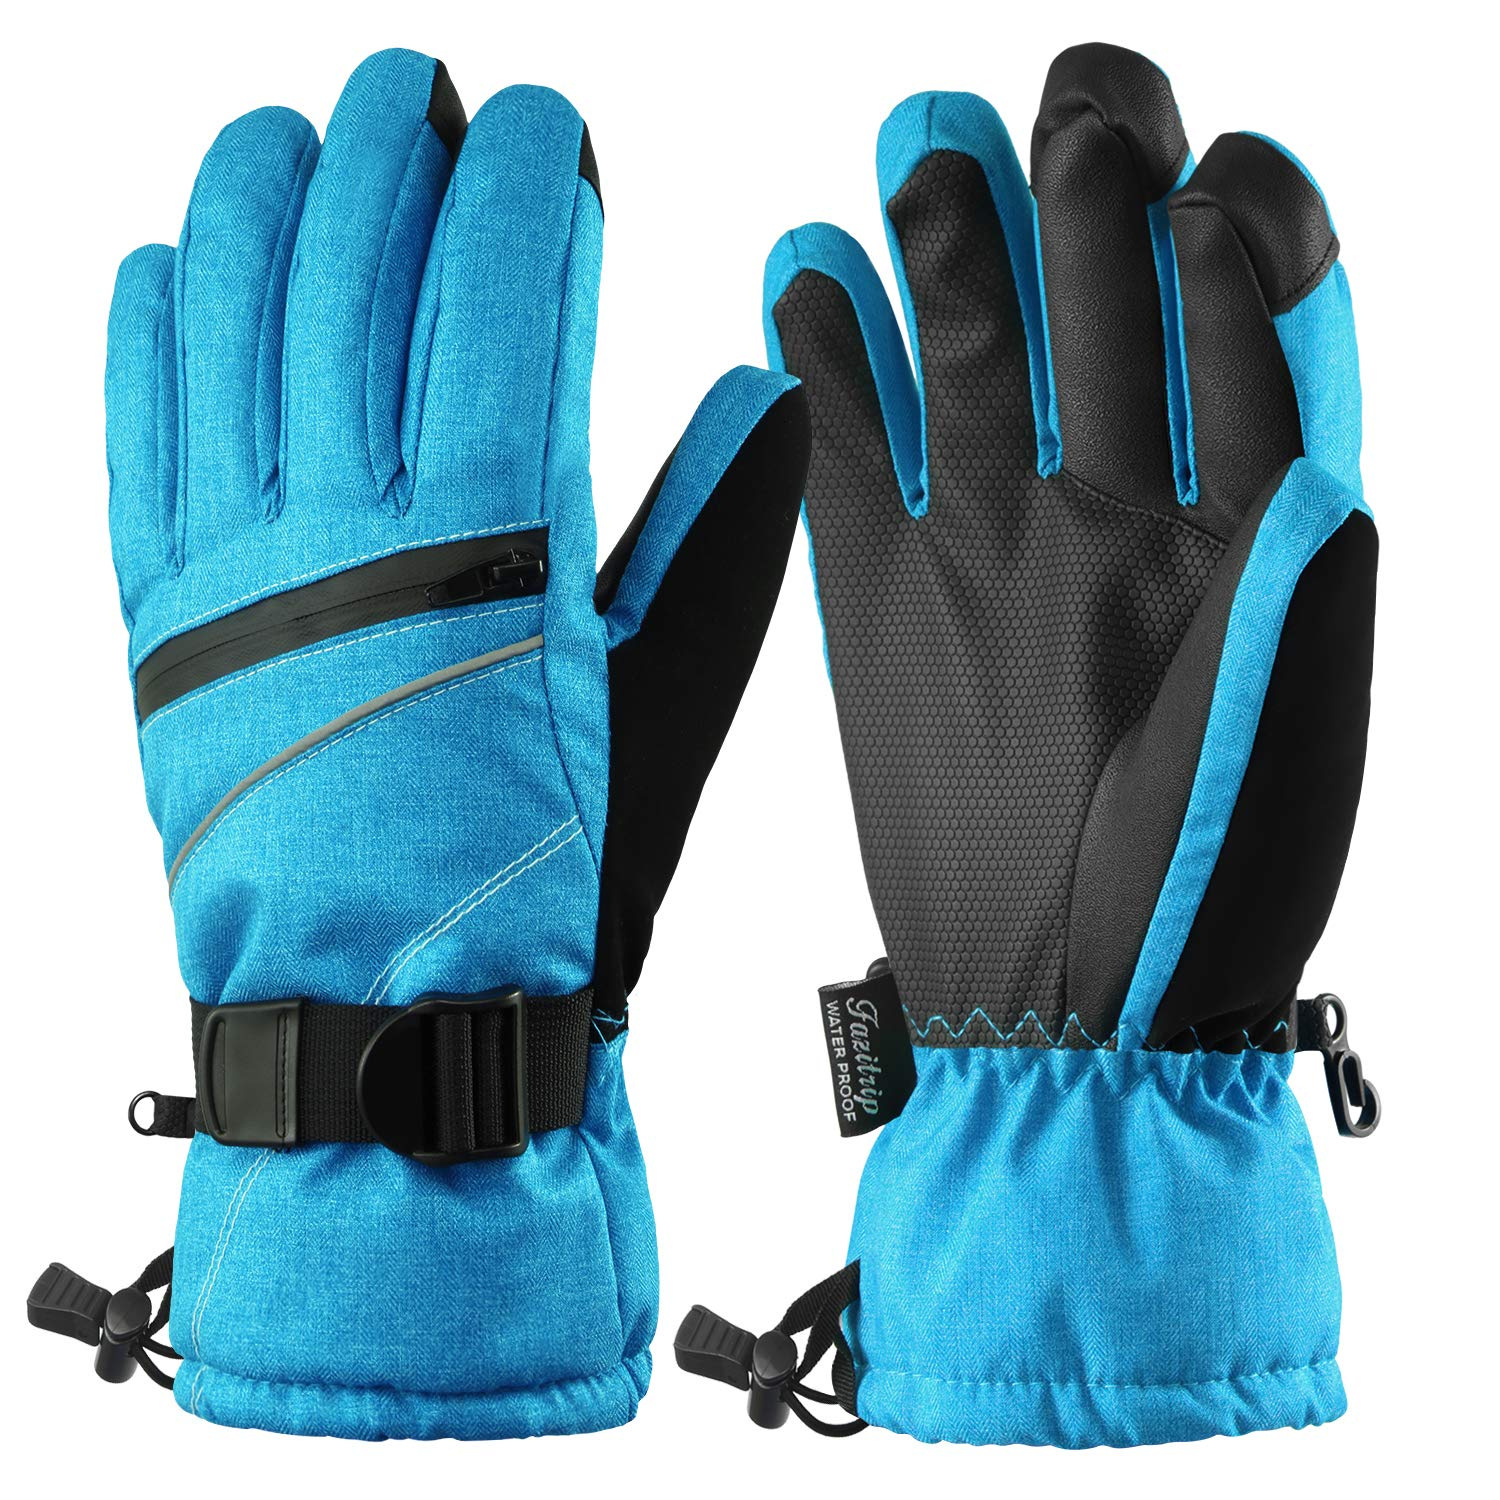 8df848dcc Fazitrip Women's Ski Gloves, 3M Thinsulate Snow Warm Insulated Winter  Gloves Windproof Waterproof Gloves for Skiing, Snowboarding and Skating